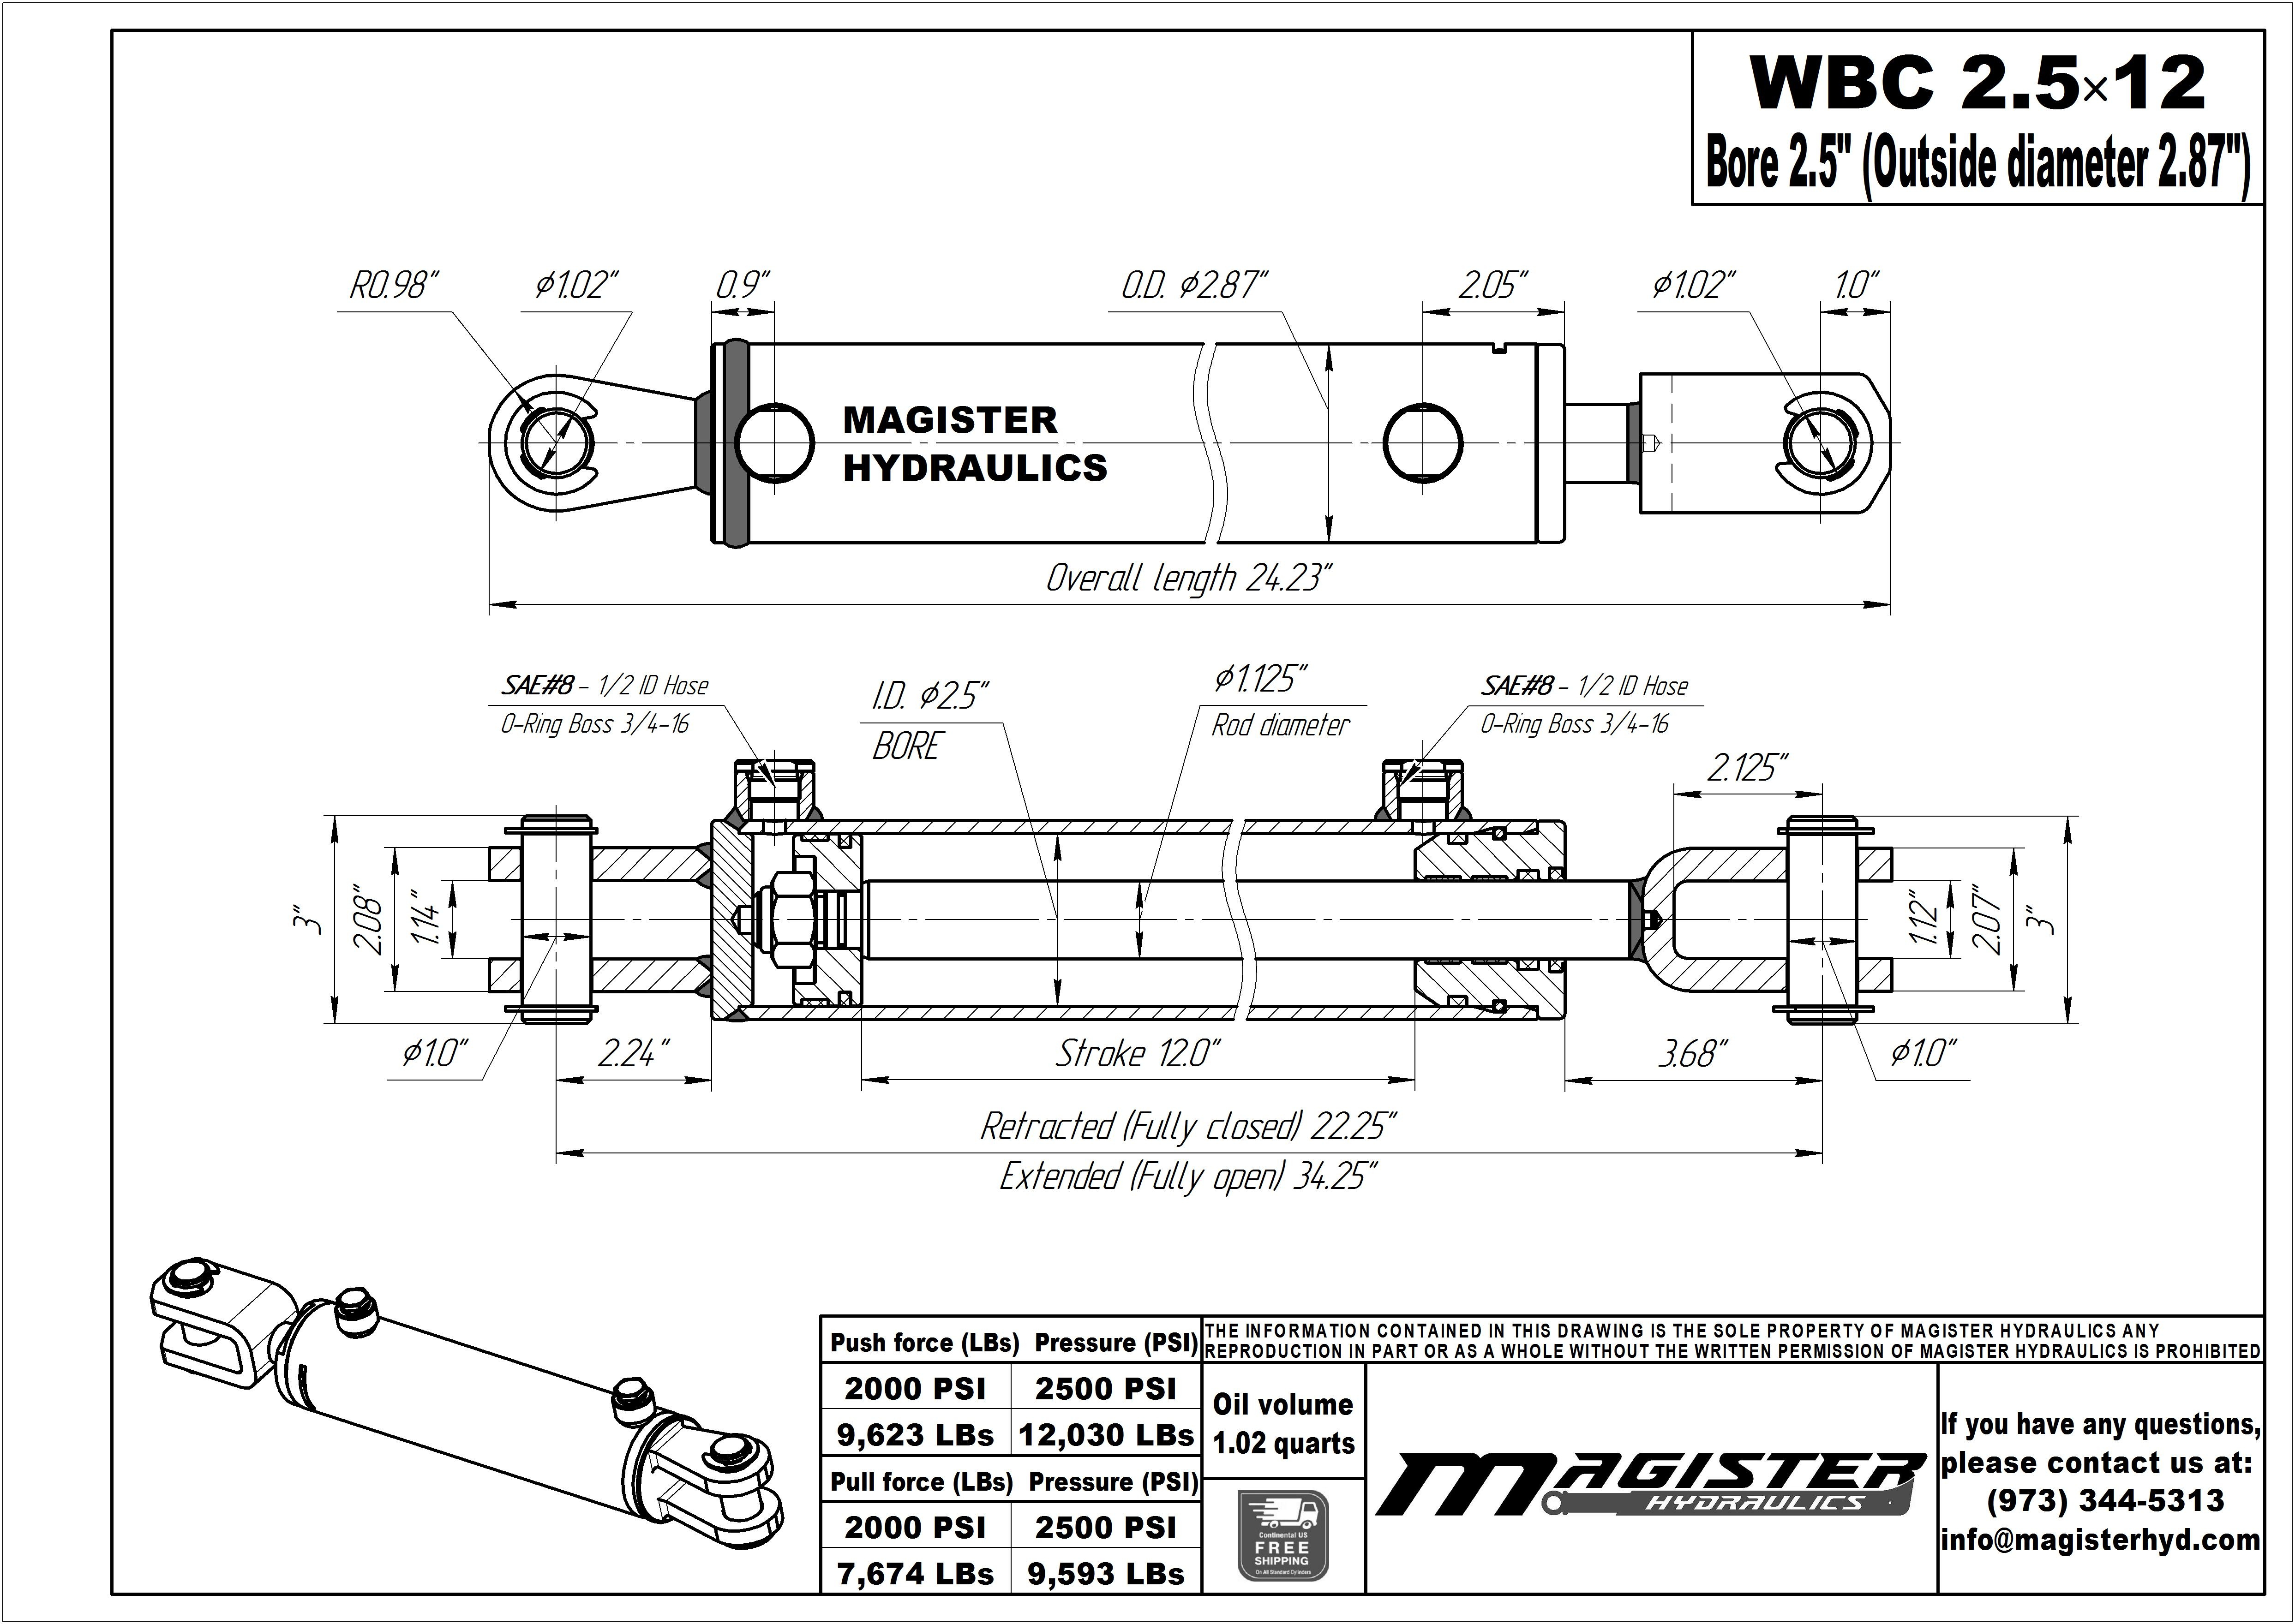 2.5 bore x 12 stroke hydraulic cylinder, ag clevis double acting cylinder | Magister Hydraulics